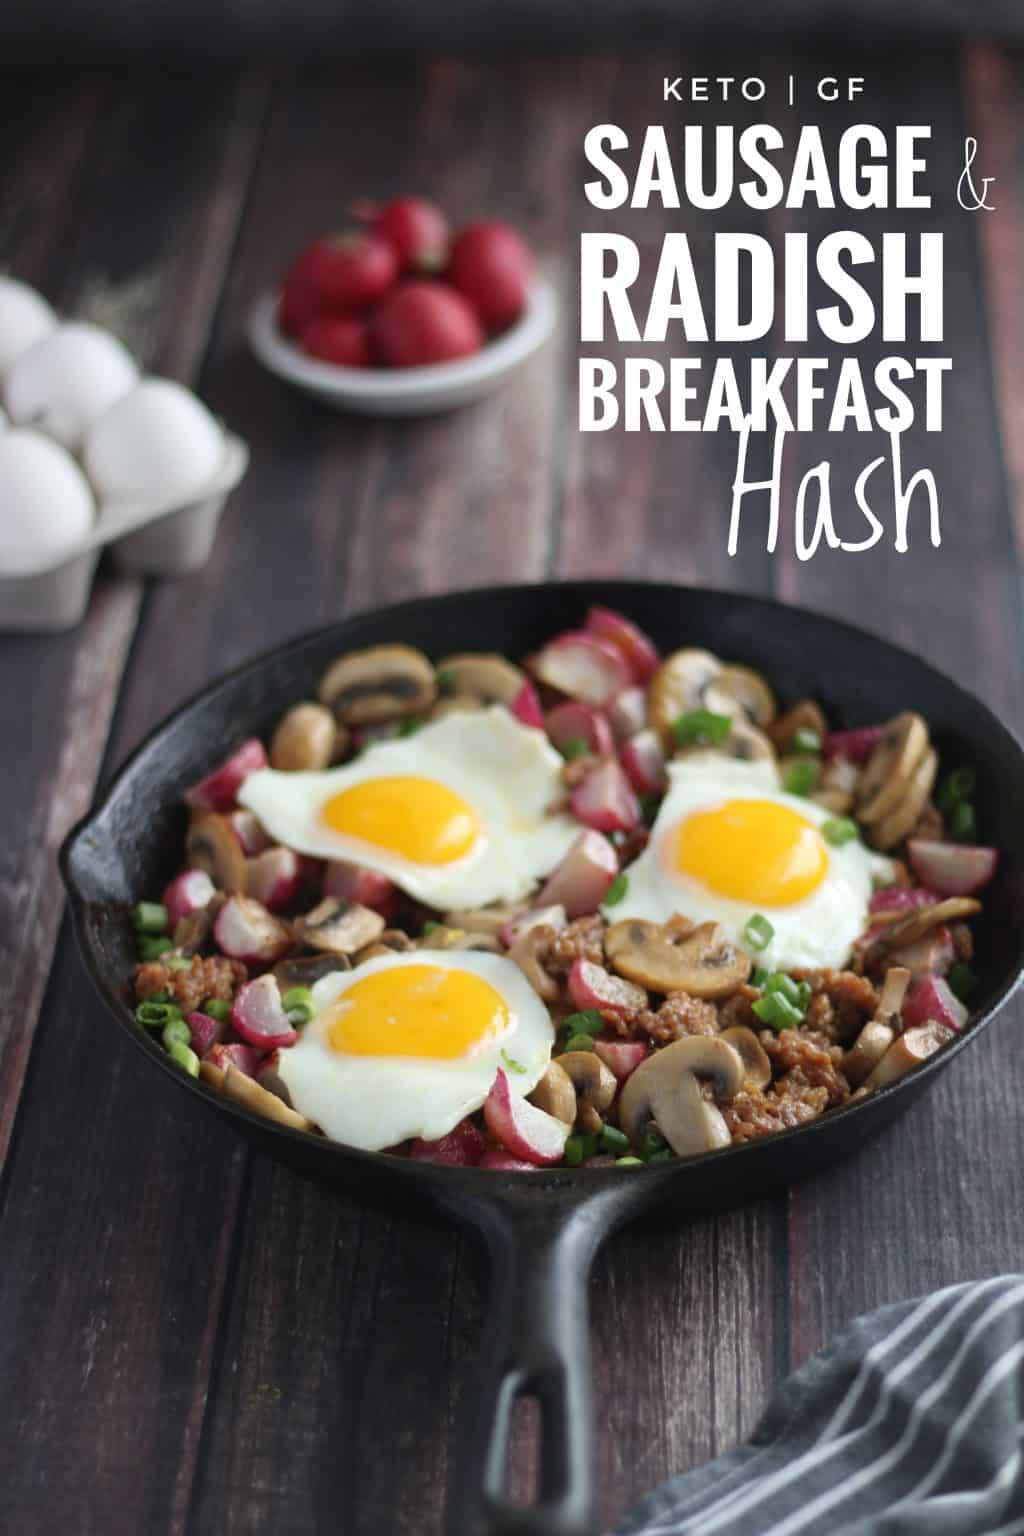 Keto Sausage and Radish Breakfast Hash